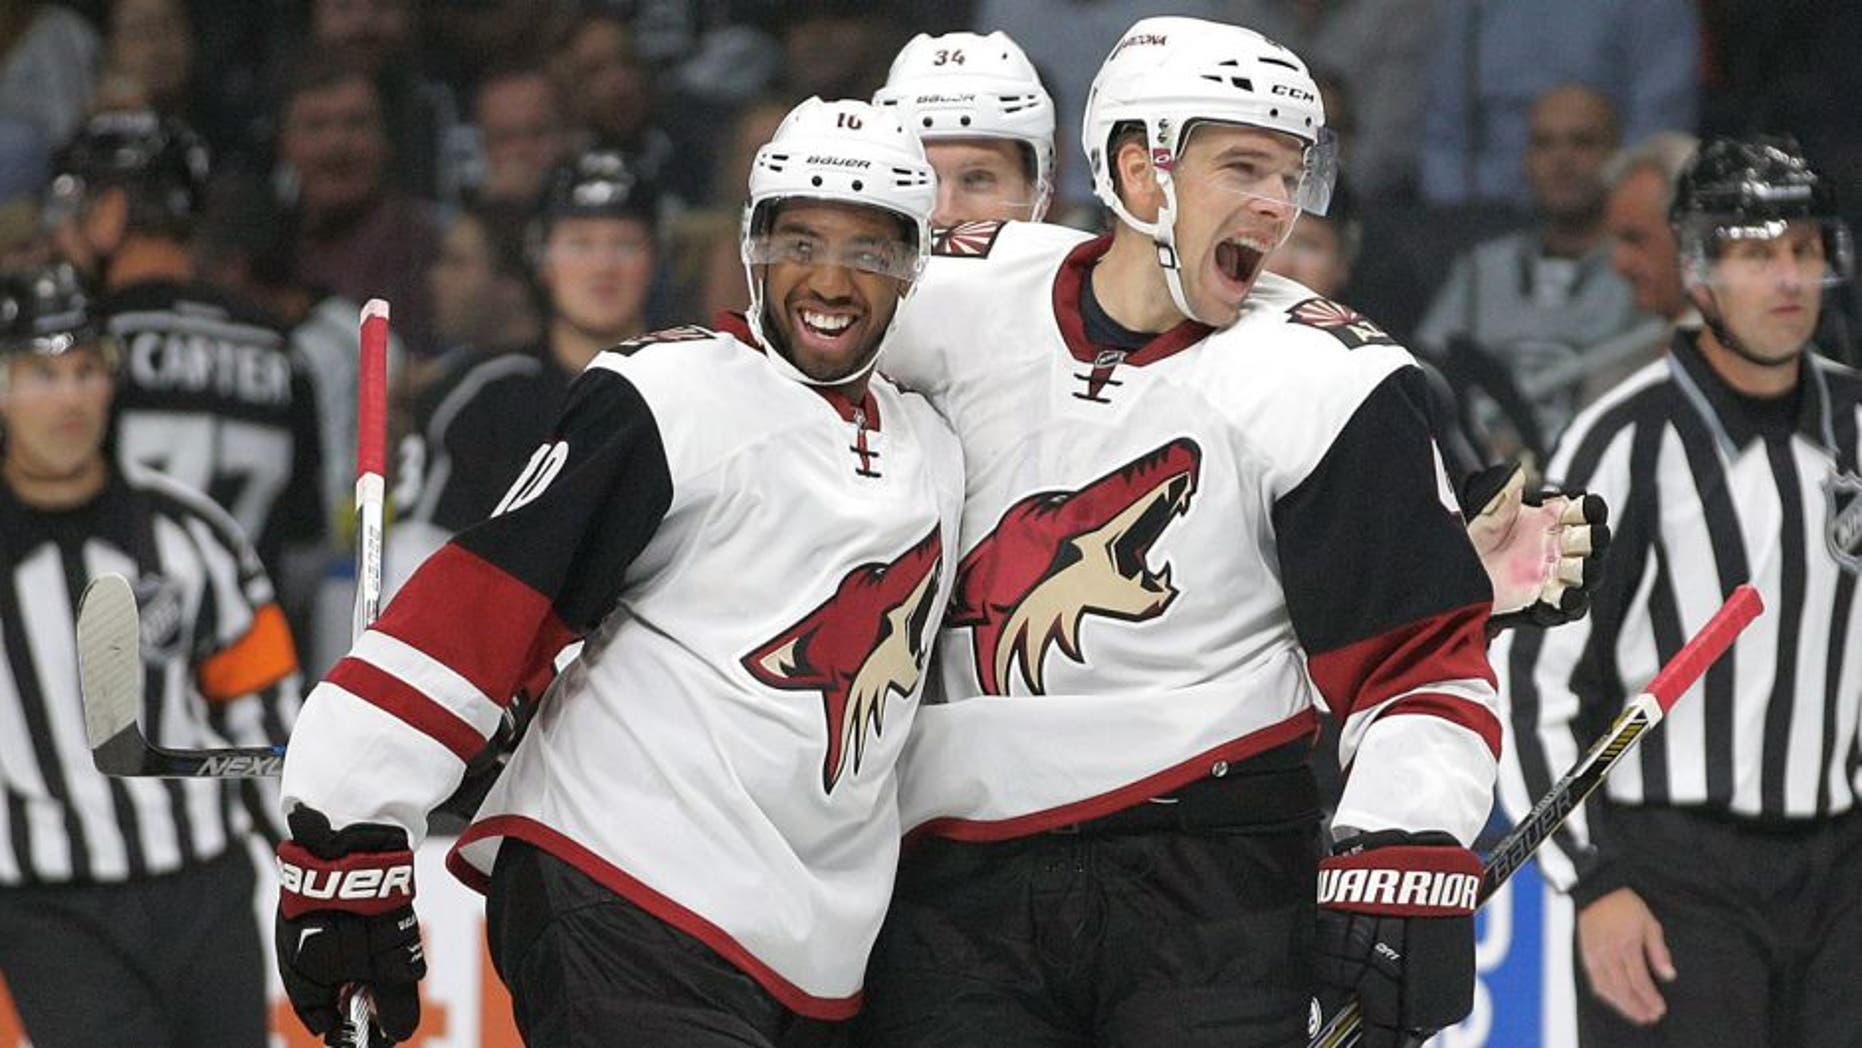 Arizona Coyotes' Zbynek Michalek, right, of the Czech Republic, celebrates his goal with teammate Anthony Duclair during the first period of an NHL hockey game against the Los Angeles Kings, Friday, Oct. 9, 2015, in Los Angeles. (AP Photo/Jae C. Hong)